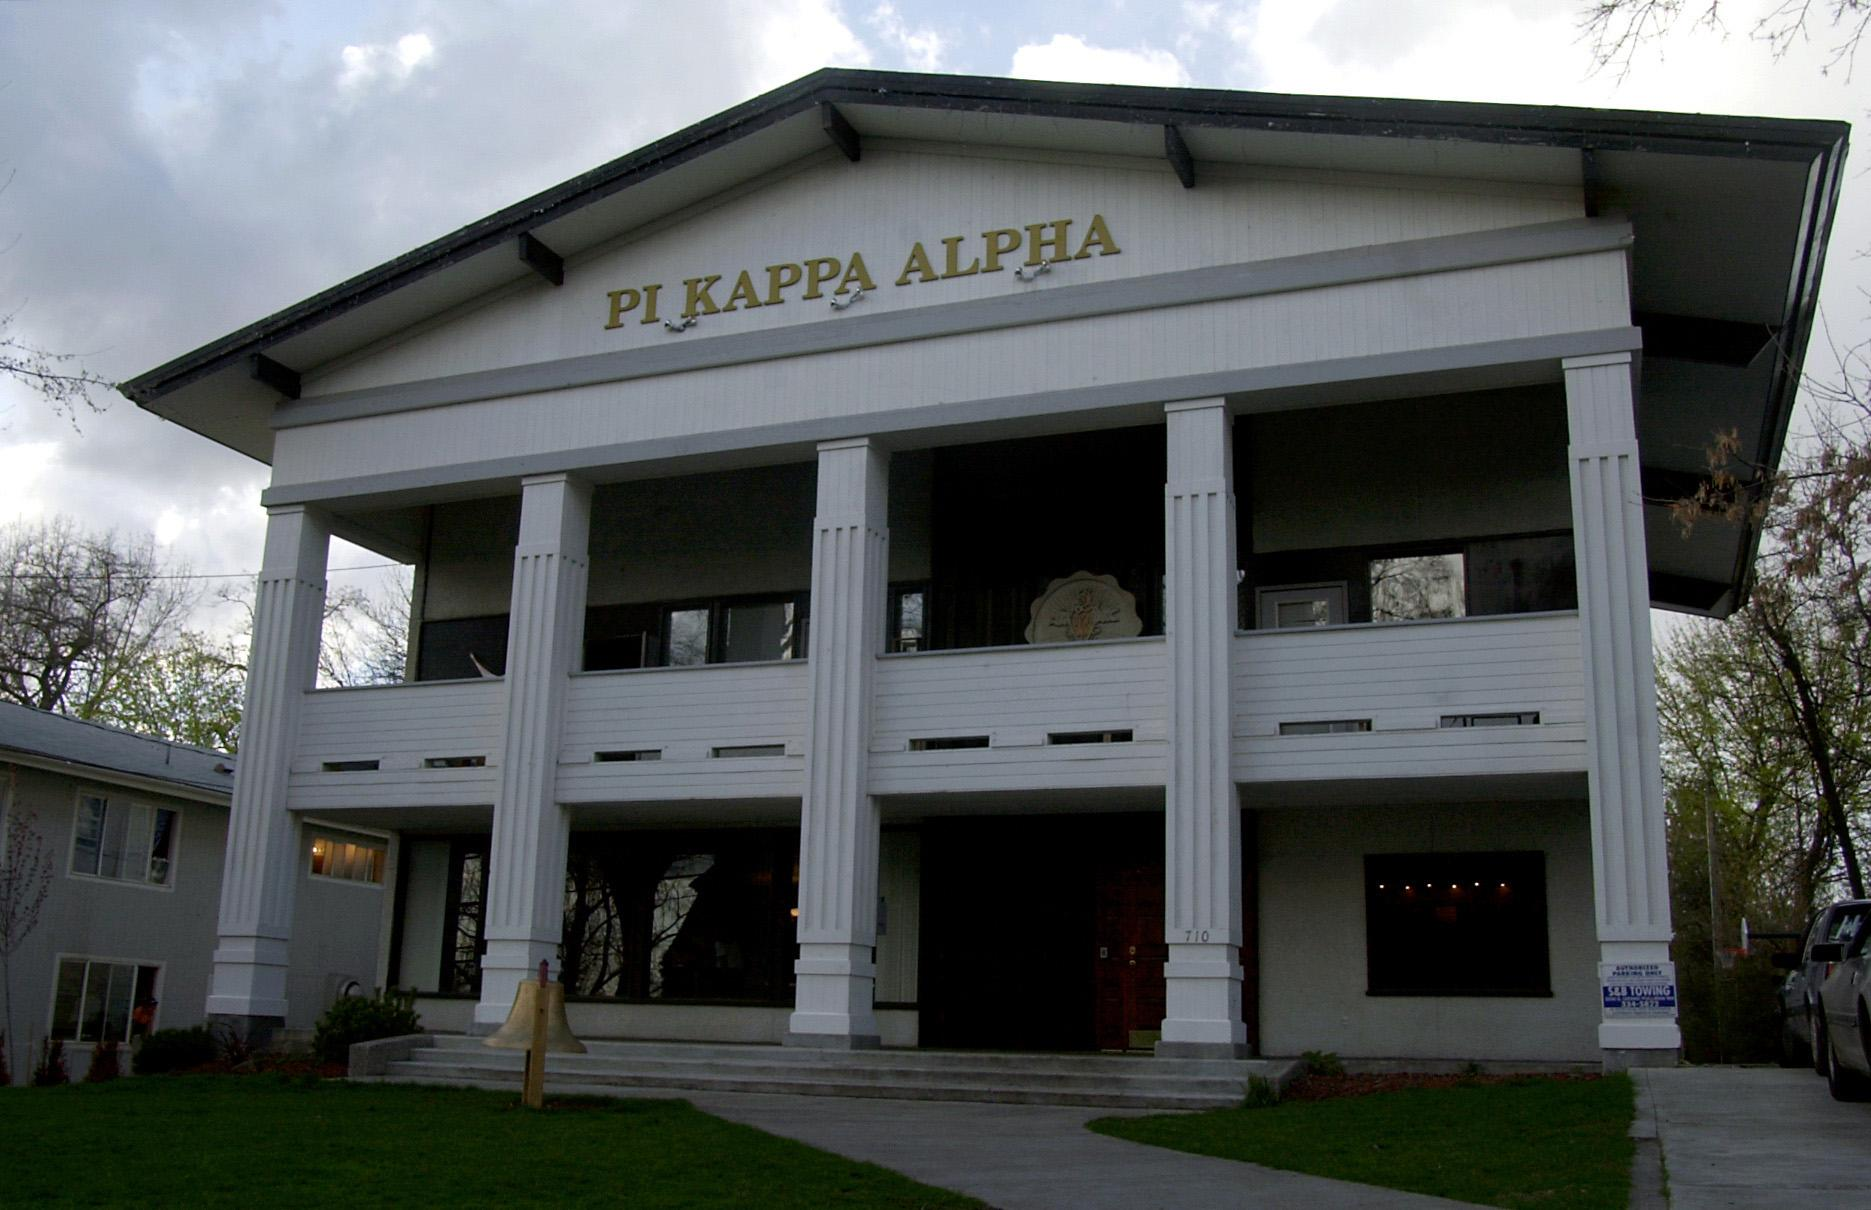 Wsu Fraternities Shut Down In 2012 2014 May Be Reinstated The